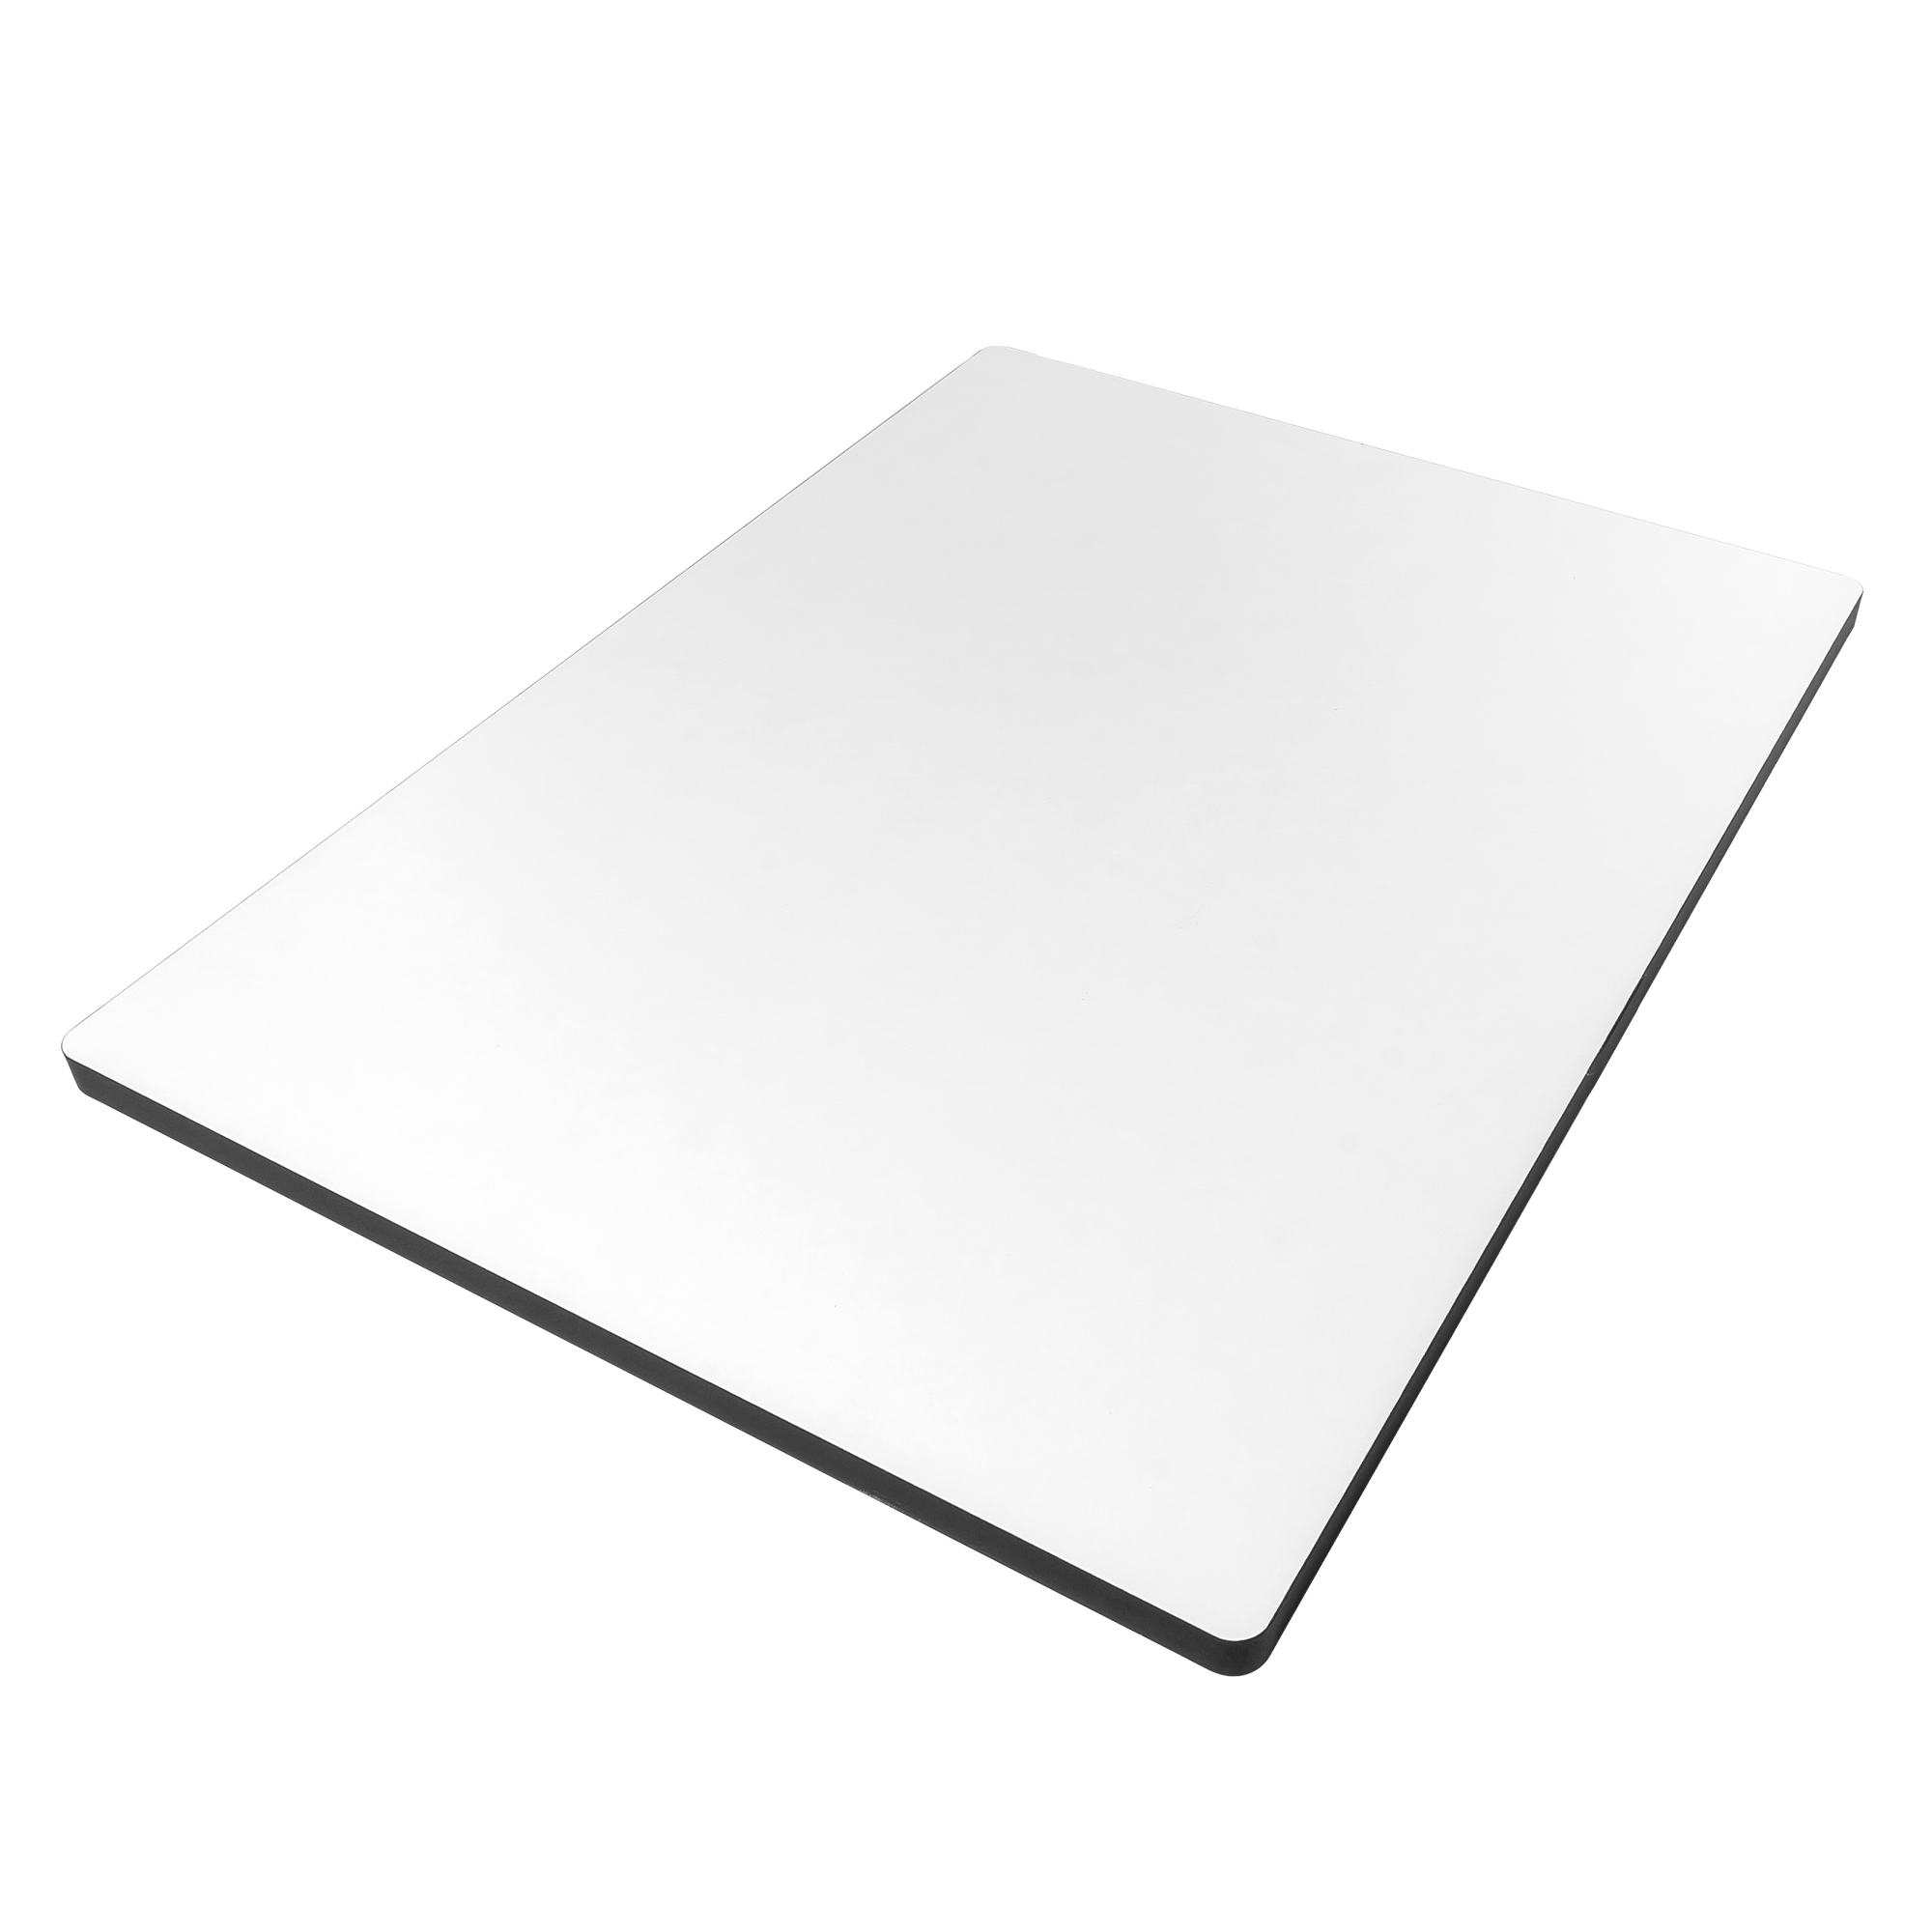 db drafting drawing board made for architecture